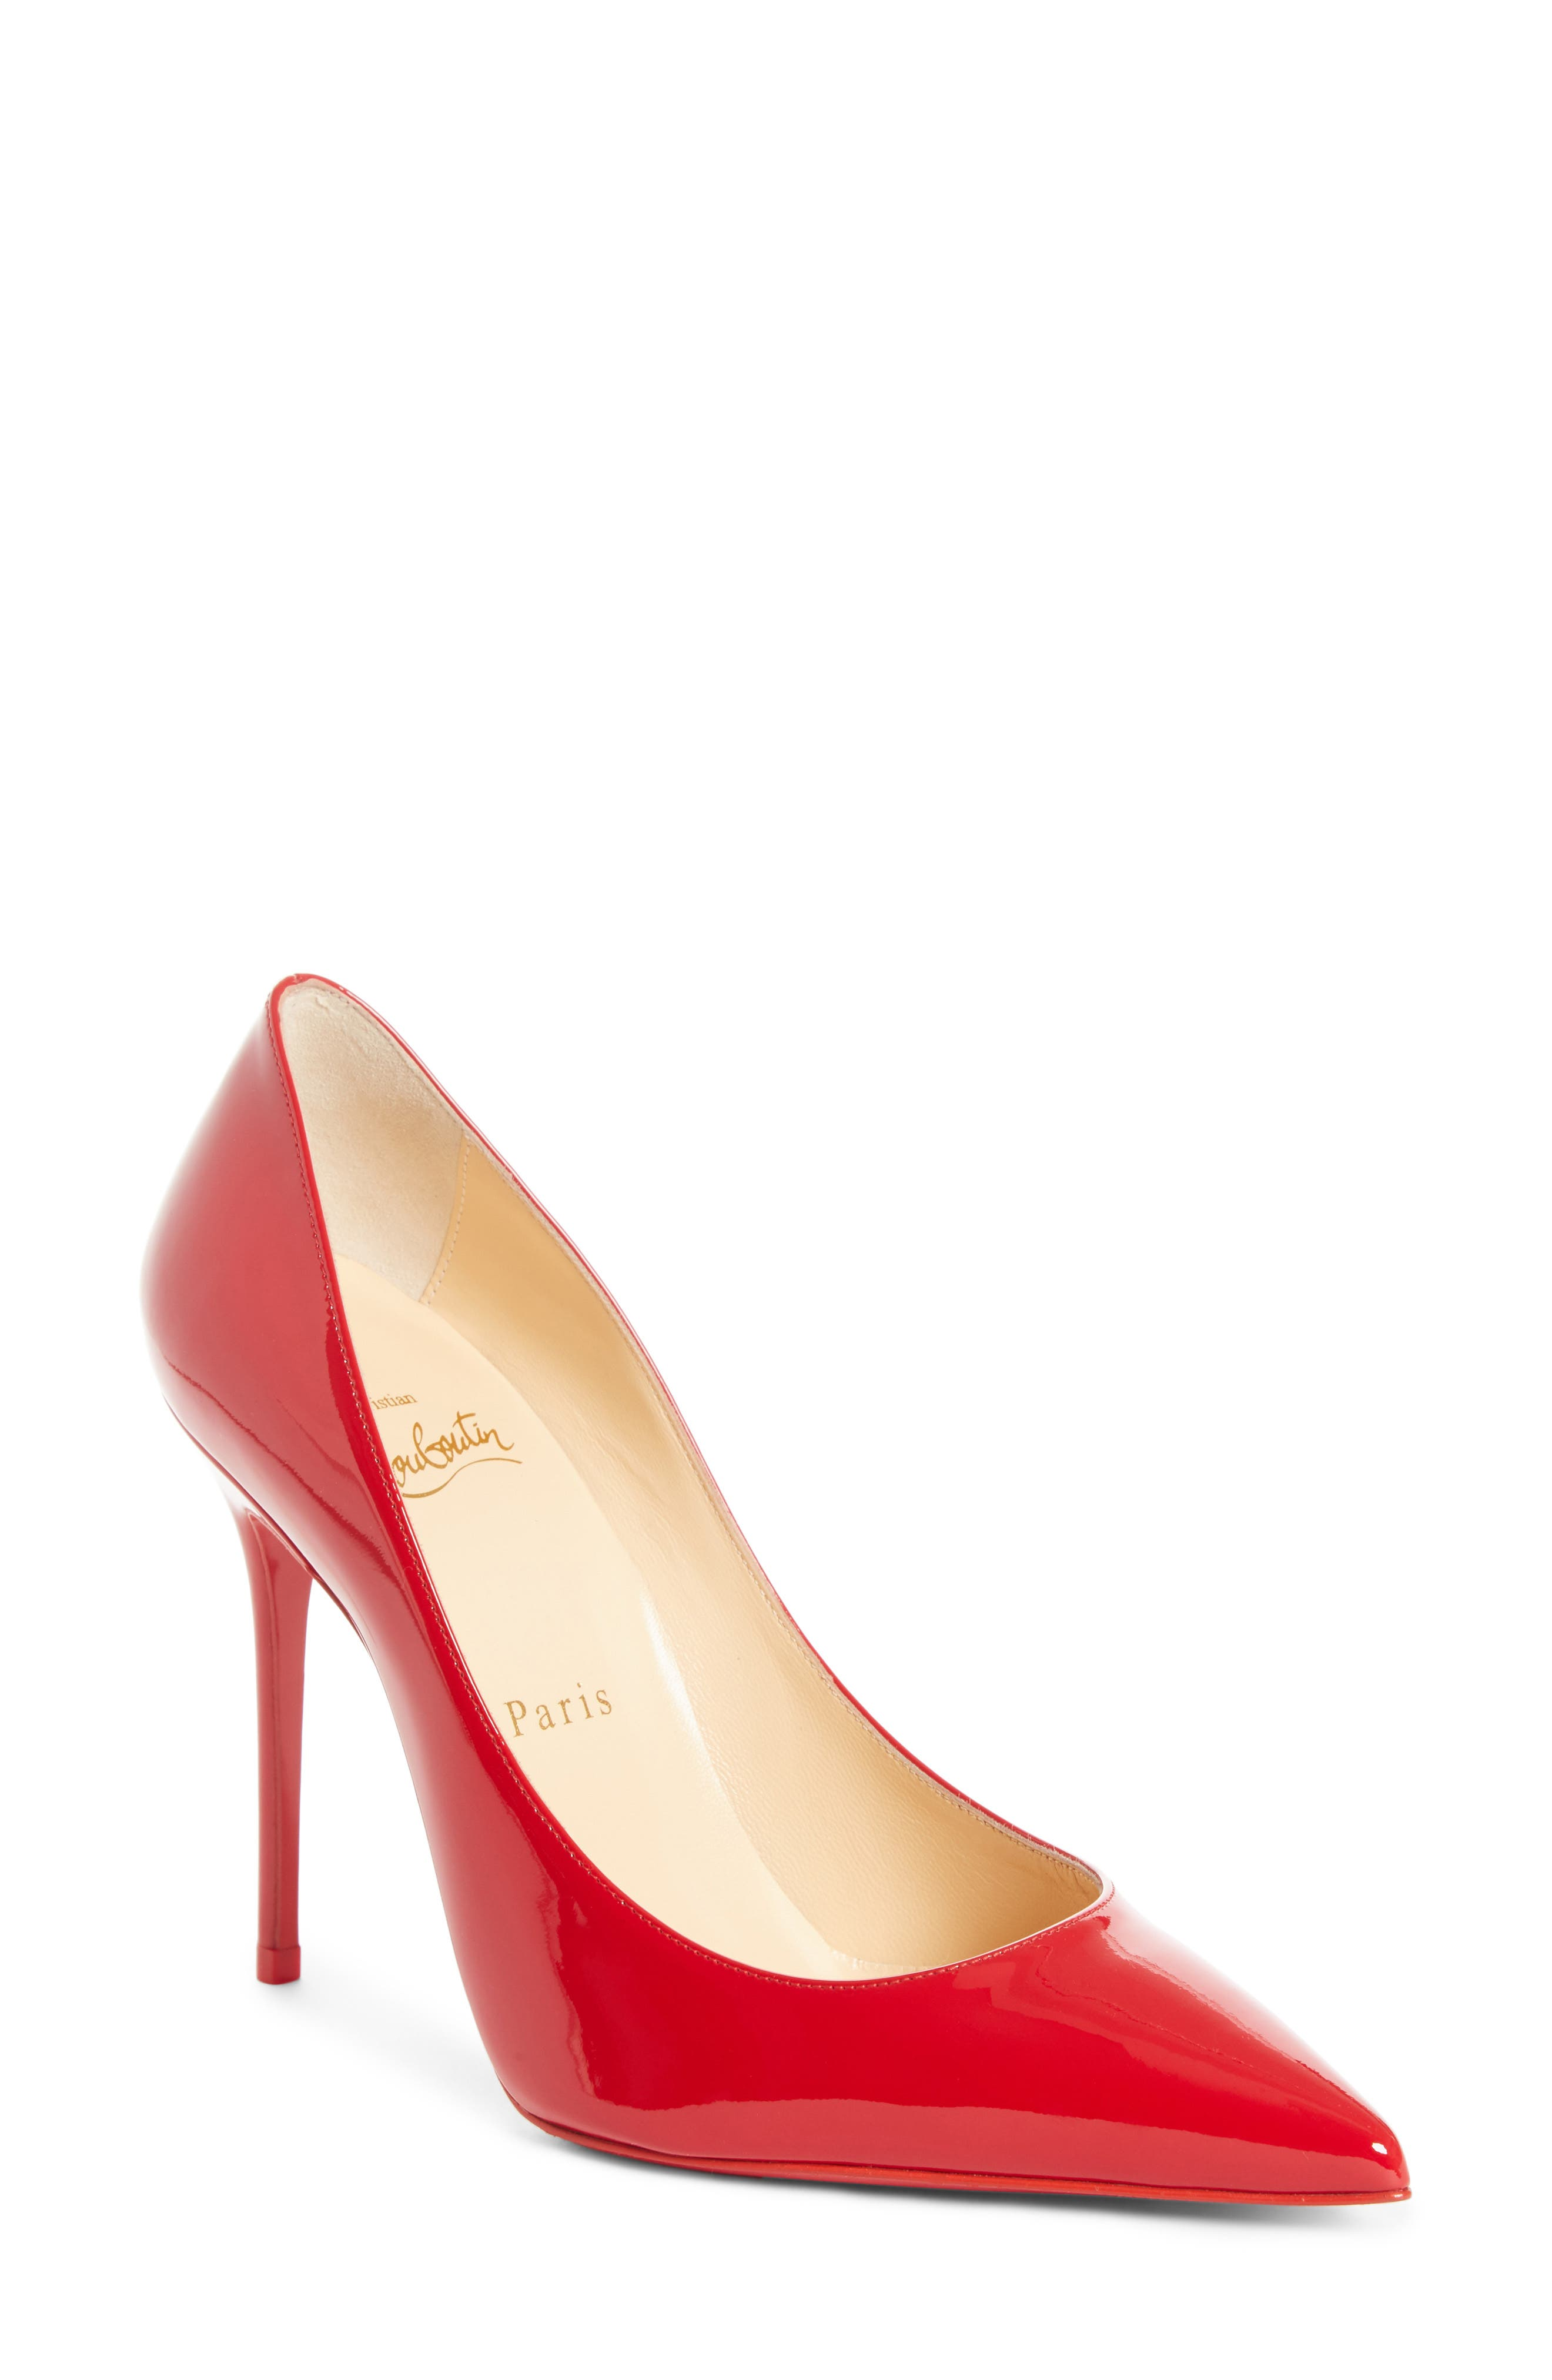 'Decollete' Pointy Toe Pump,                         Main,                         color, 623